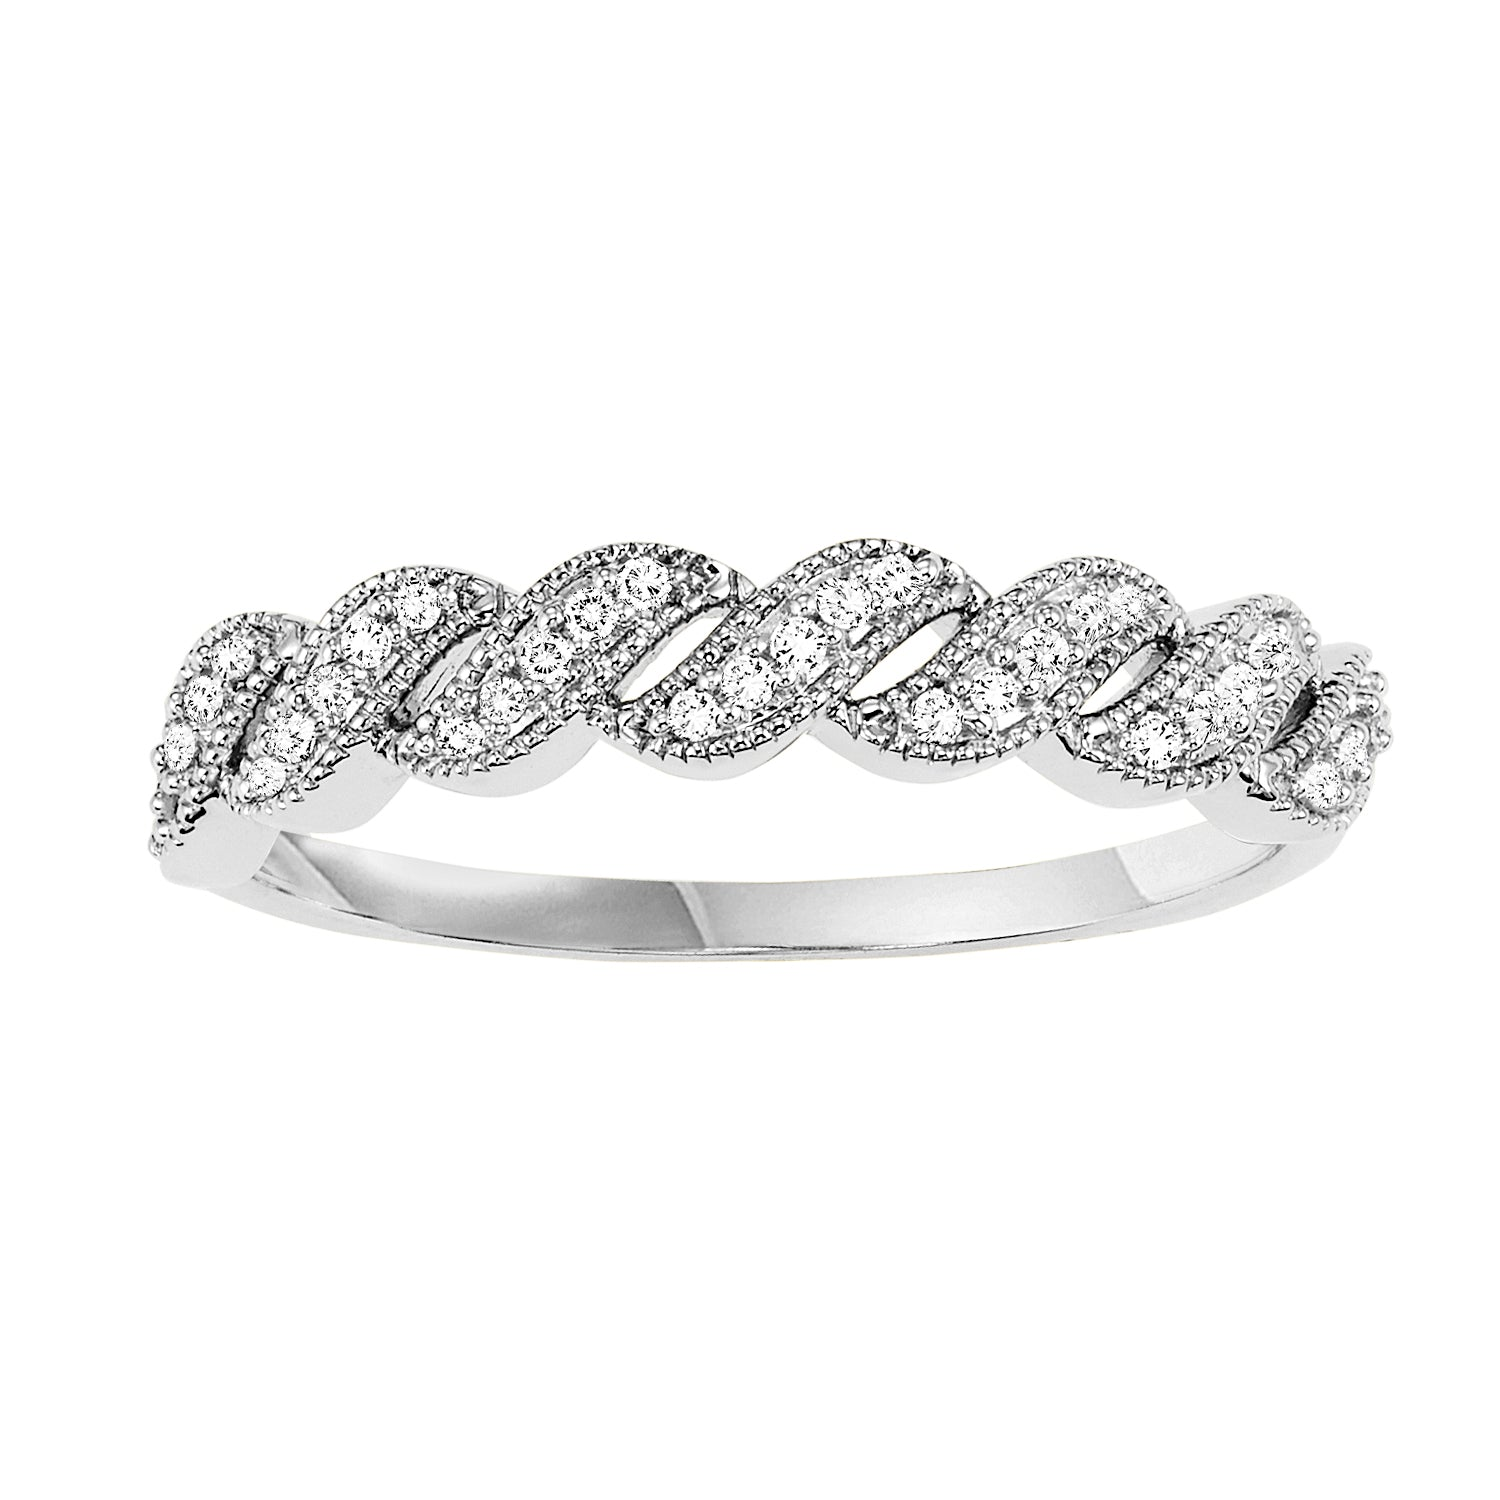 10K White Gold Diamond Criss-Cross Ring - 1/10 ct.